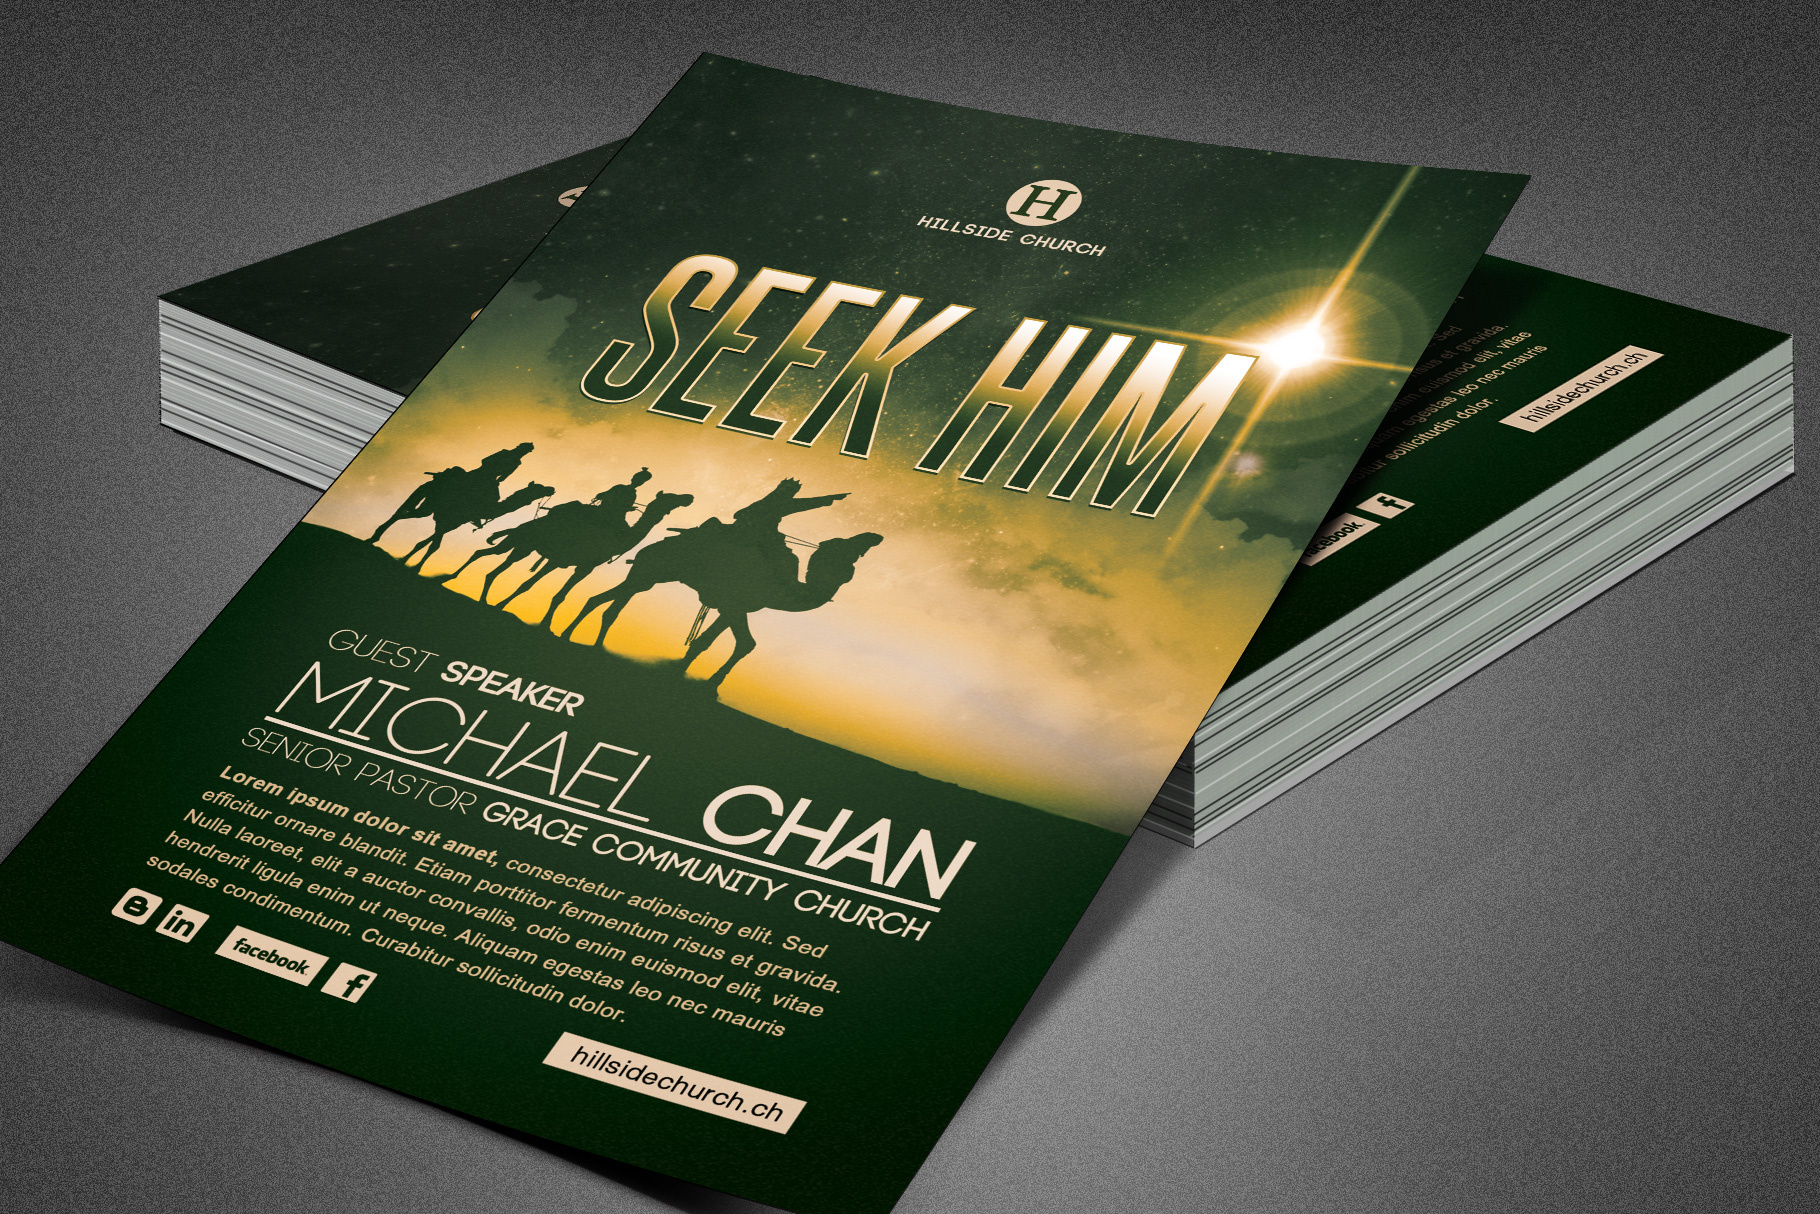 Seek Him Church Flyer Template example image 5